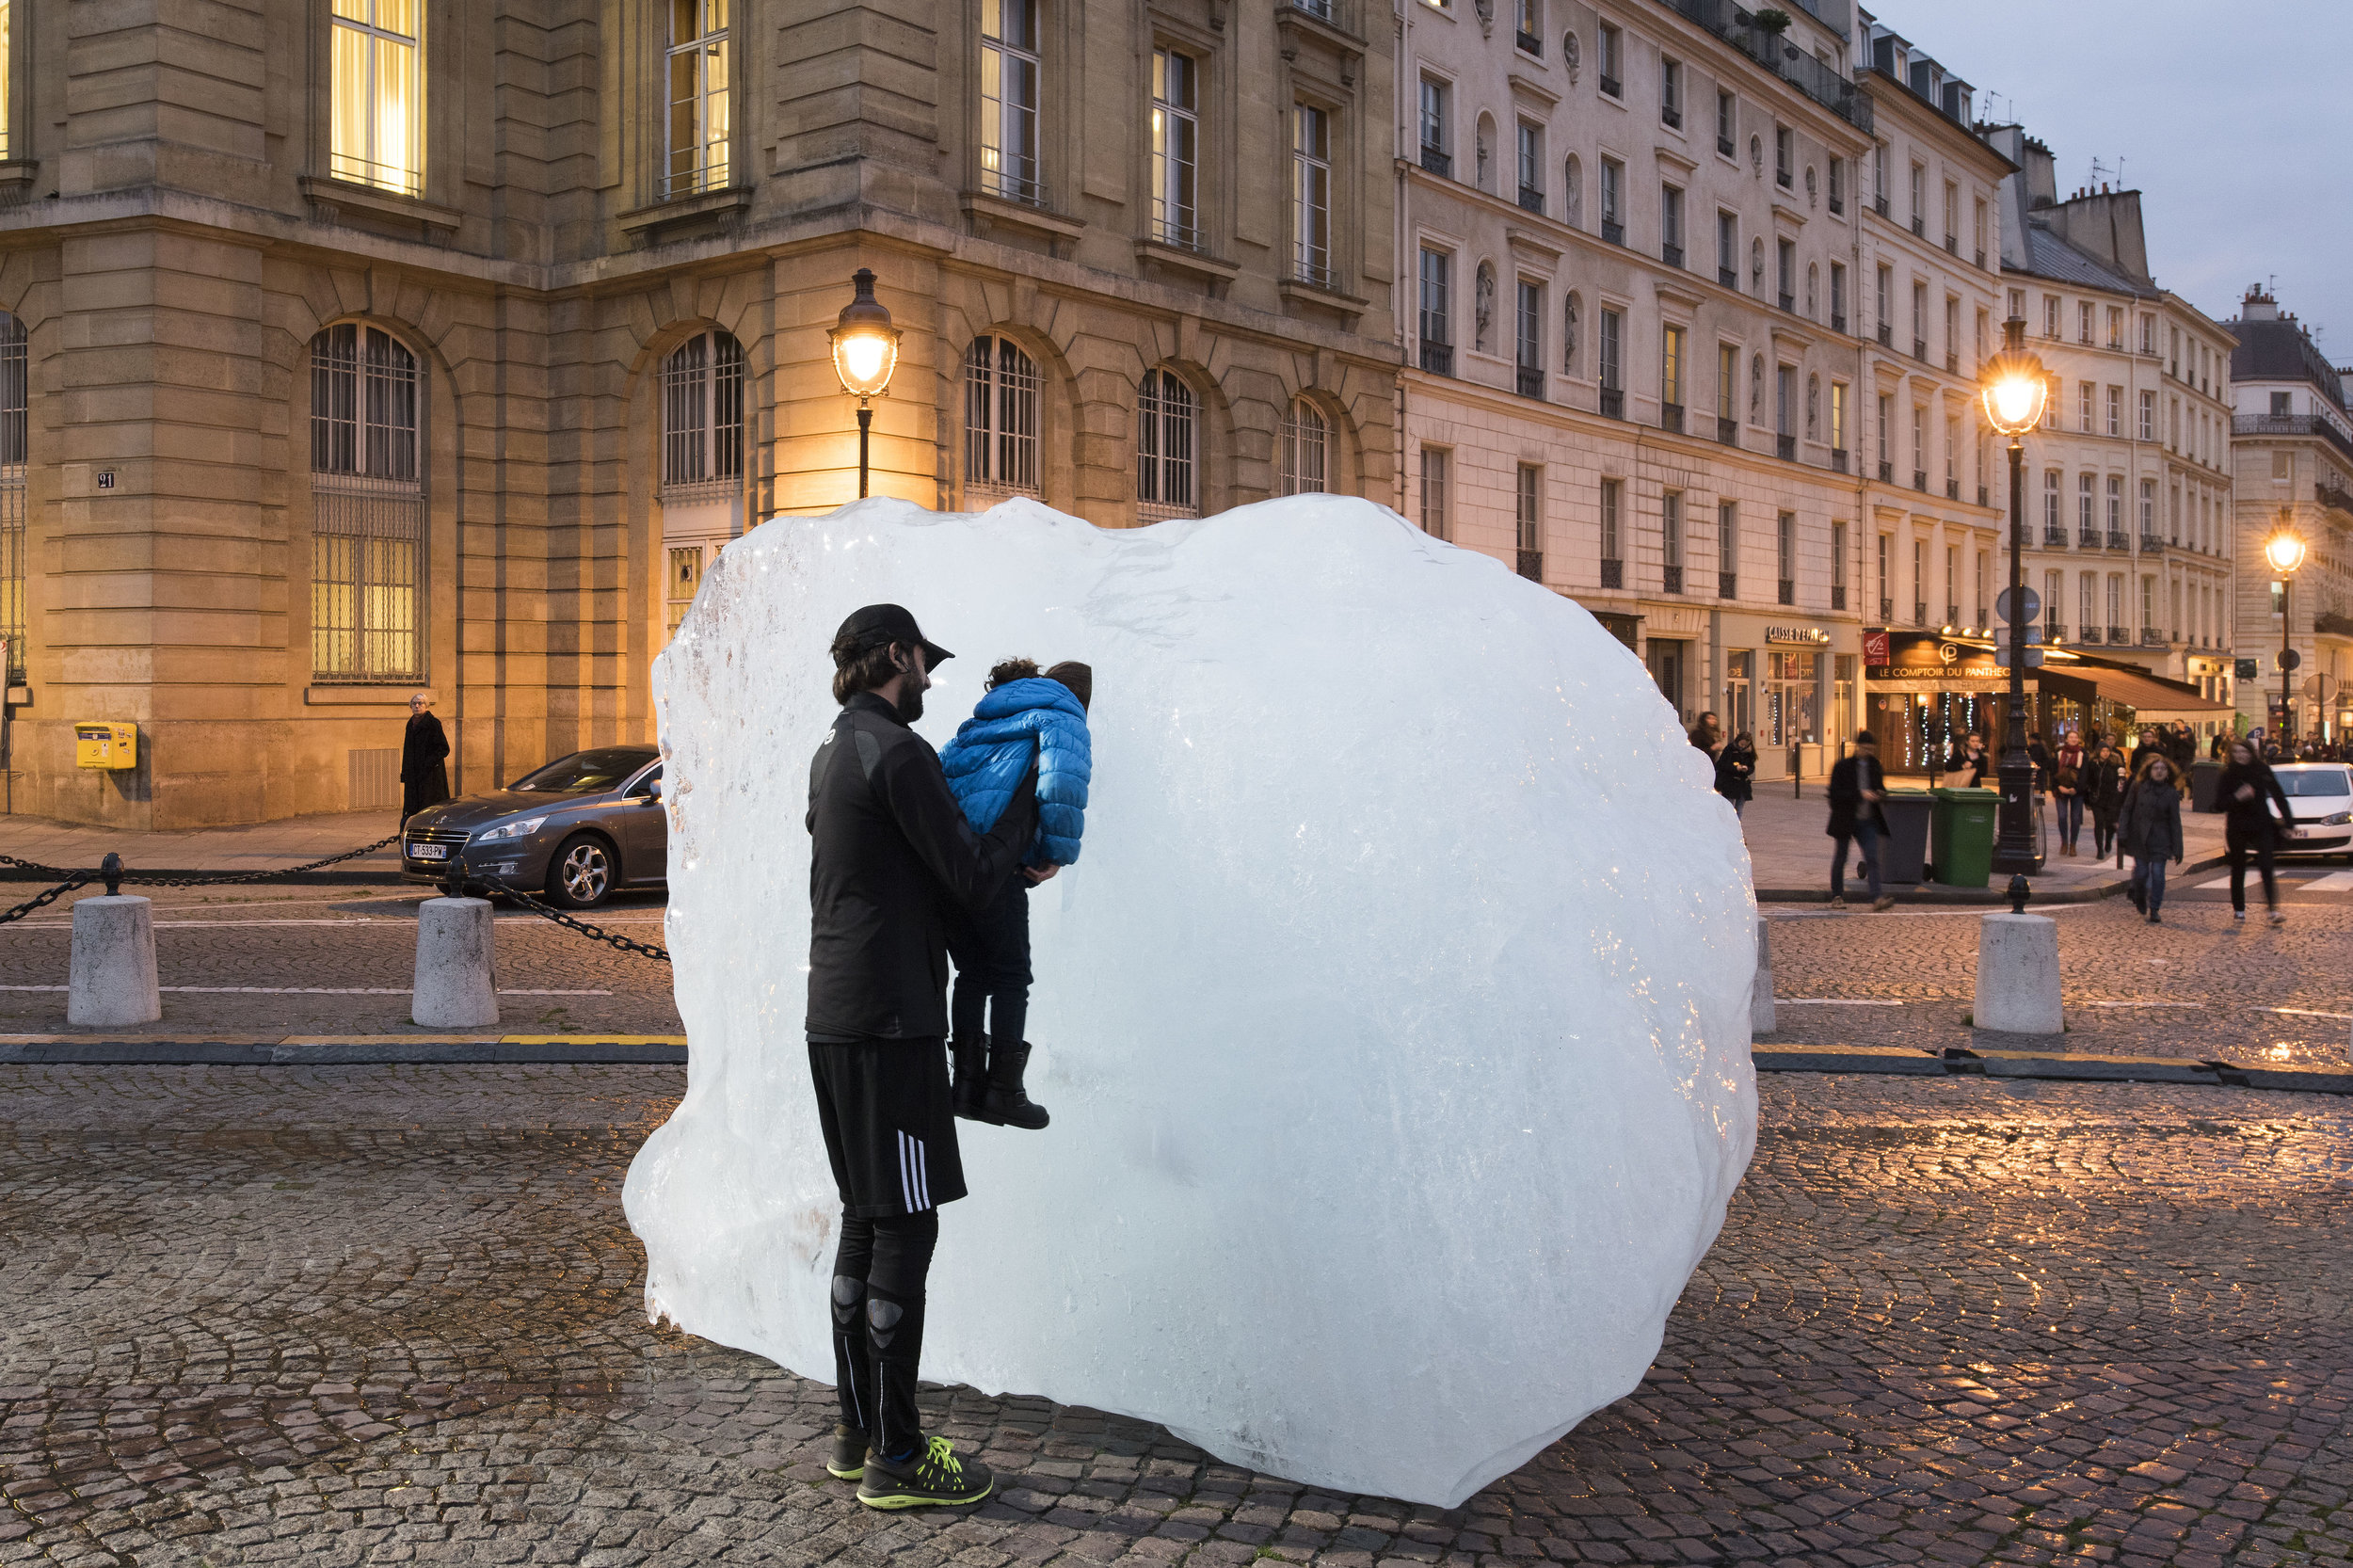 """OLAFUR ELIASSON. """"ICE WATCH"""" (2015). CAPTURED ICEBERGS ARRANGED IN FRONT OF PLACE DU PANTHÉON, PARIS ON THE OCCASION OF COP 21 – UNITED NATIONS CONFERENCE ON CLIMATE CHANGE. PHOTO: MARTIN ARGYROGLO."""